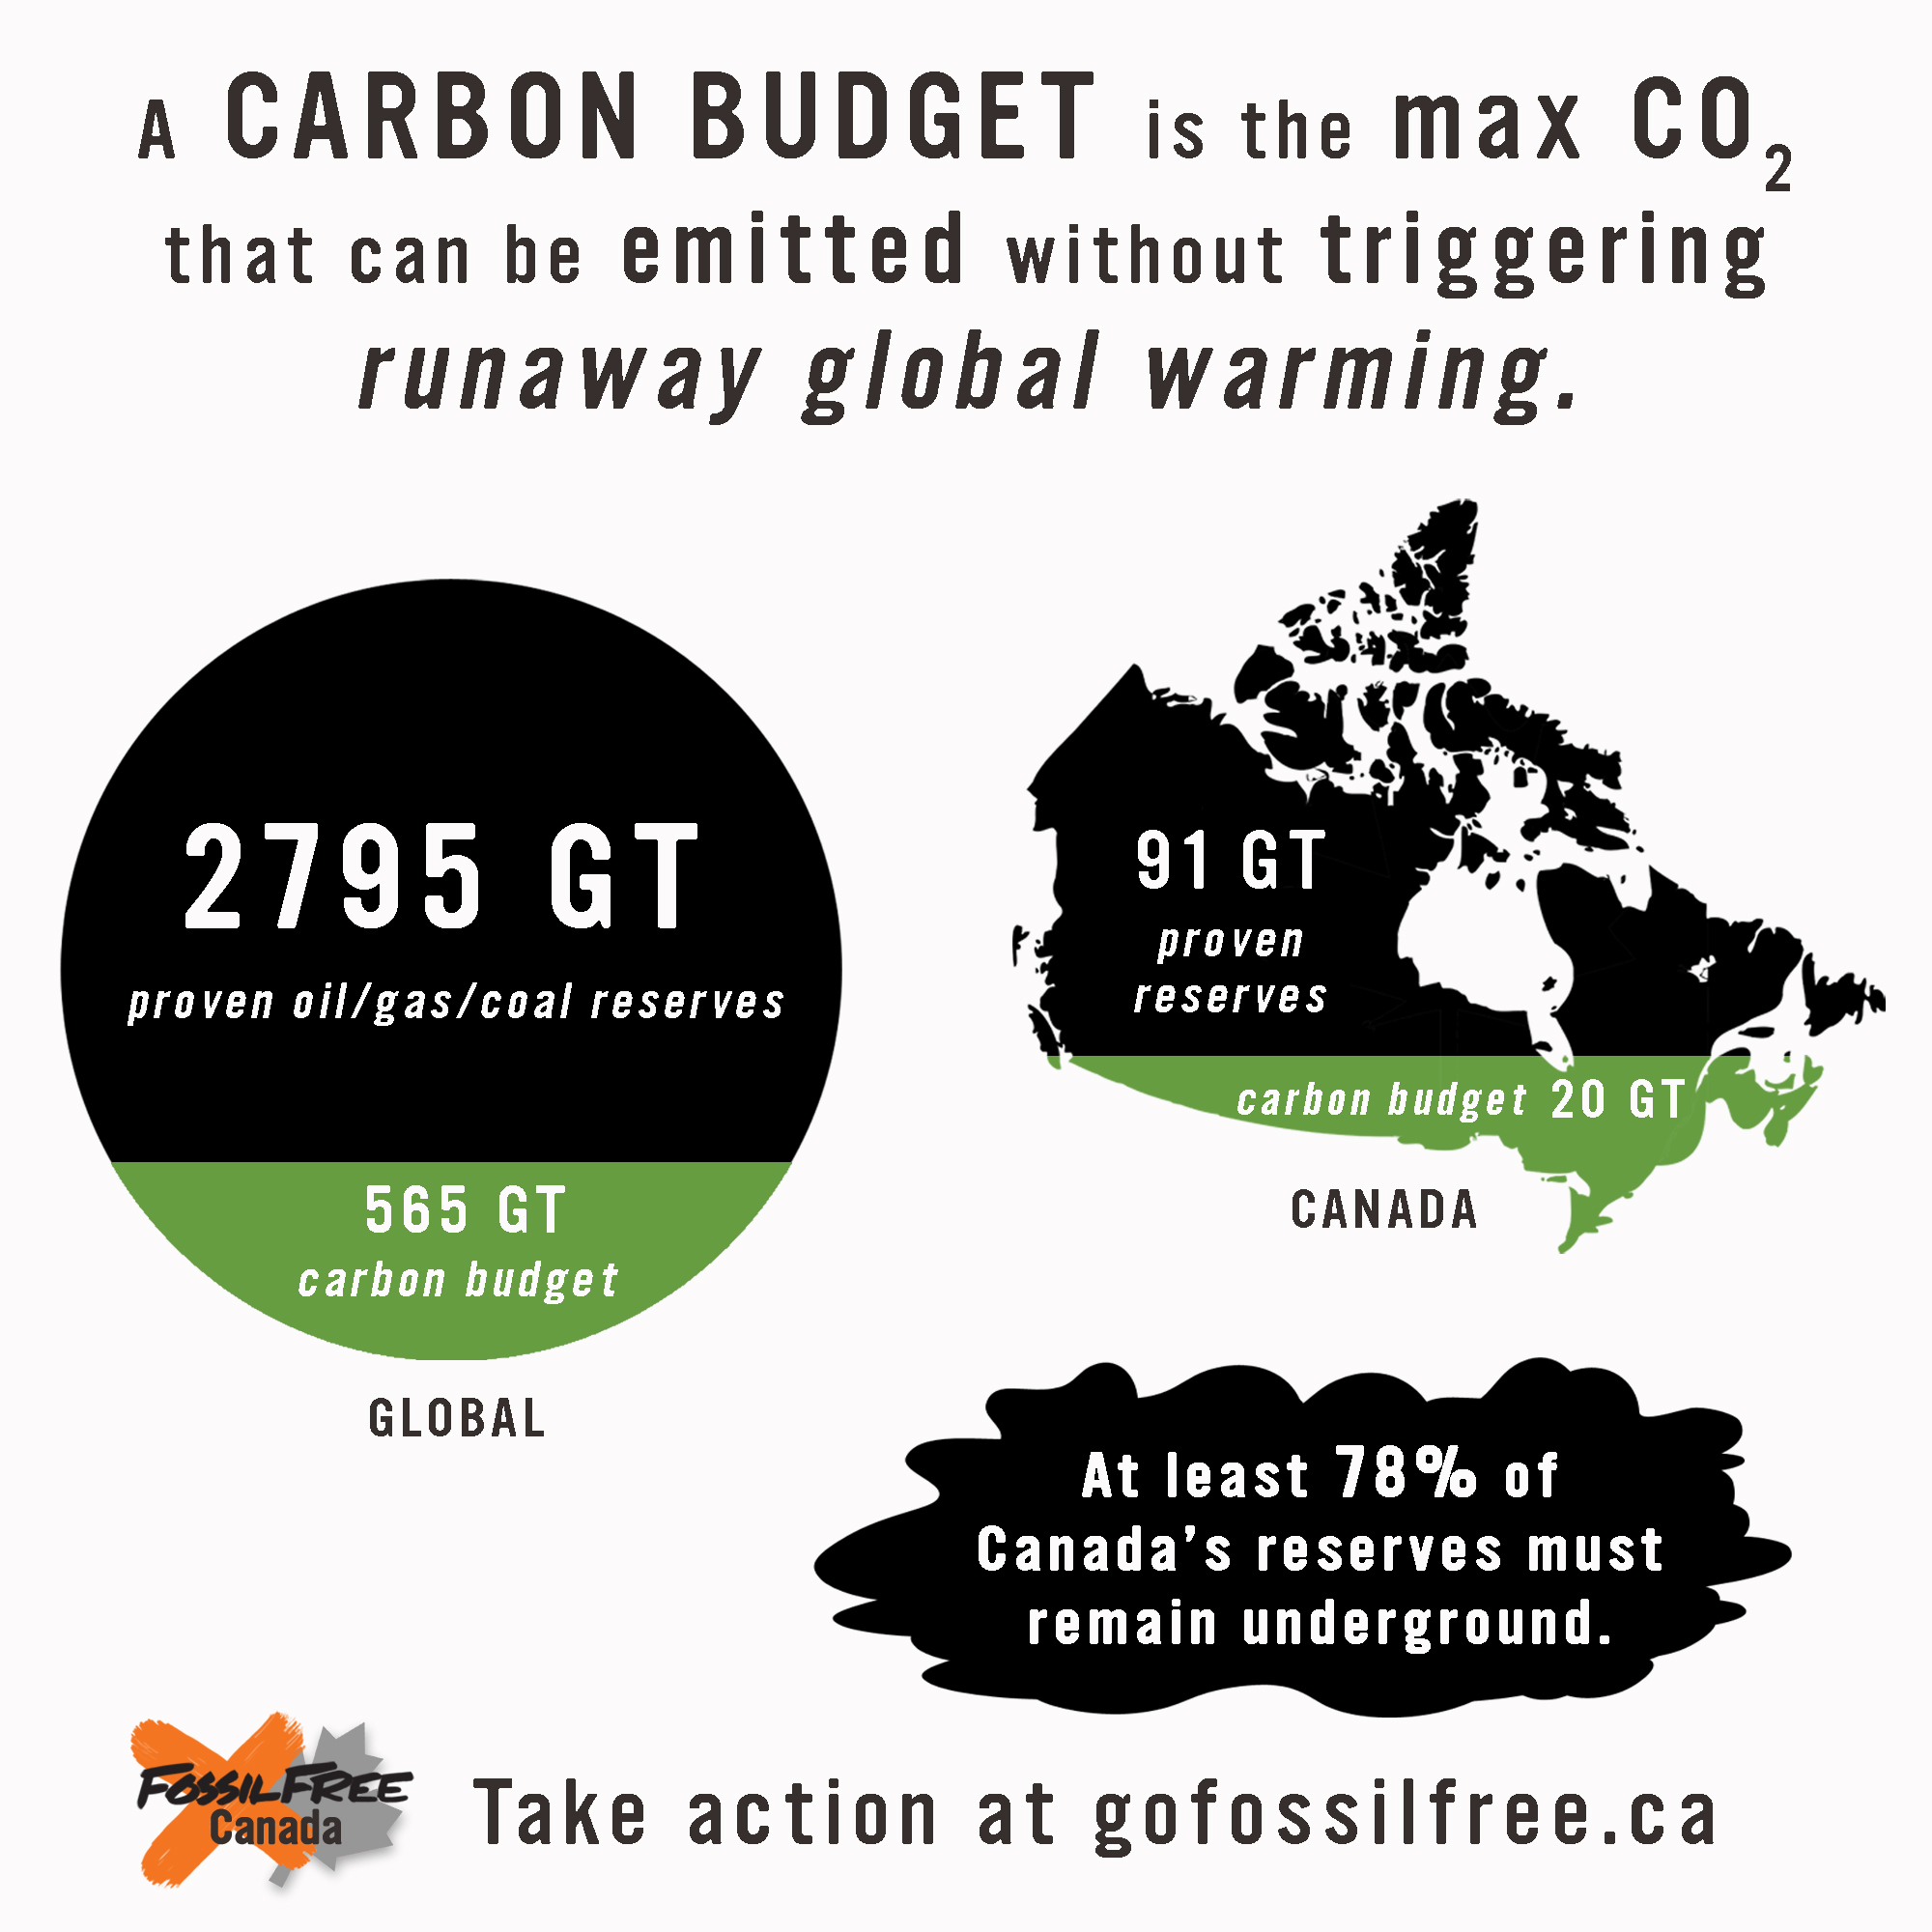 Fossil_Free_Canada_Infographic_v4.jpg